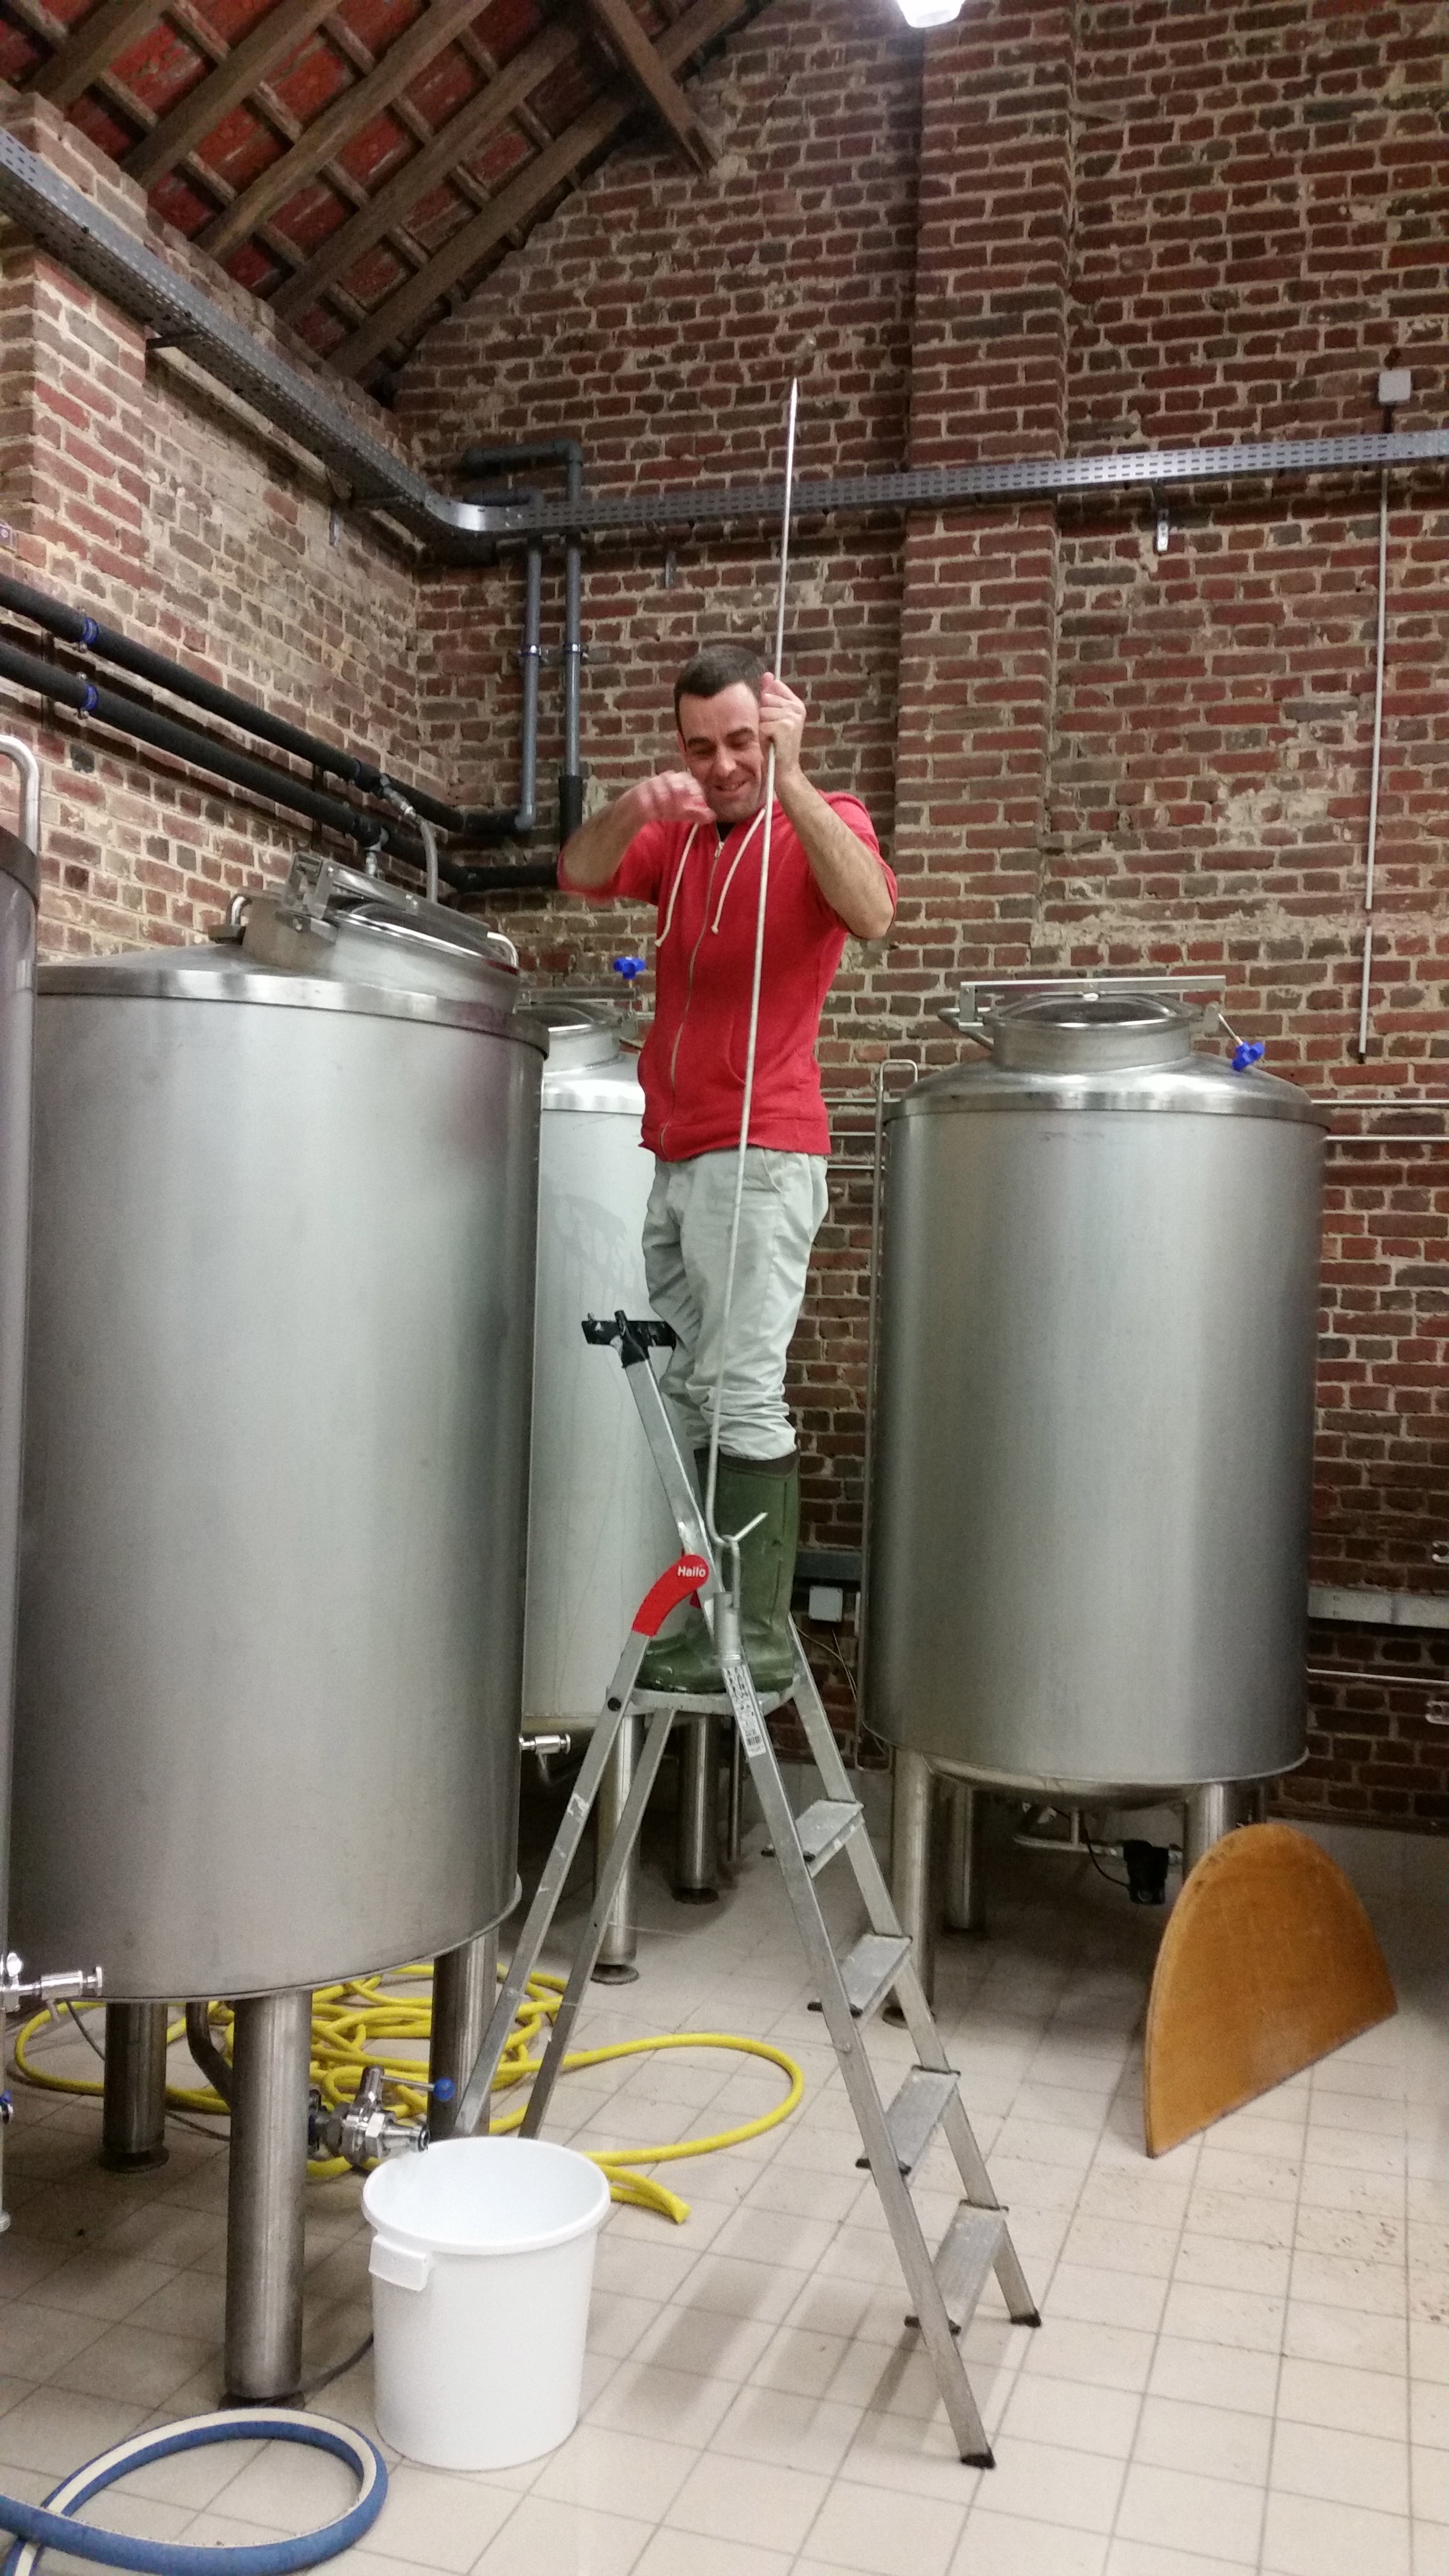 Adding a 'thimble' to the fermentation vessel before casting the wort much to Mr. Barraf's amusement